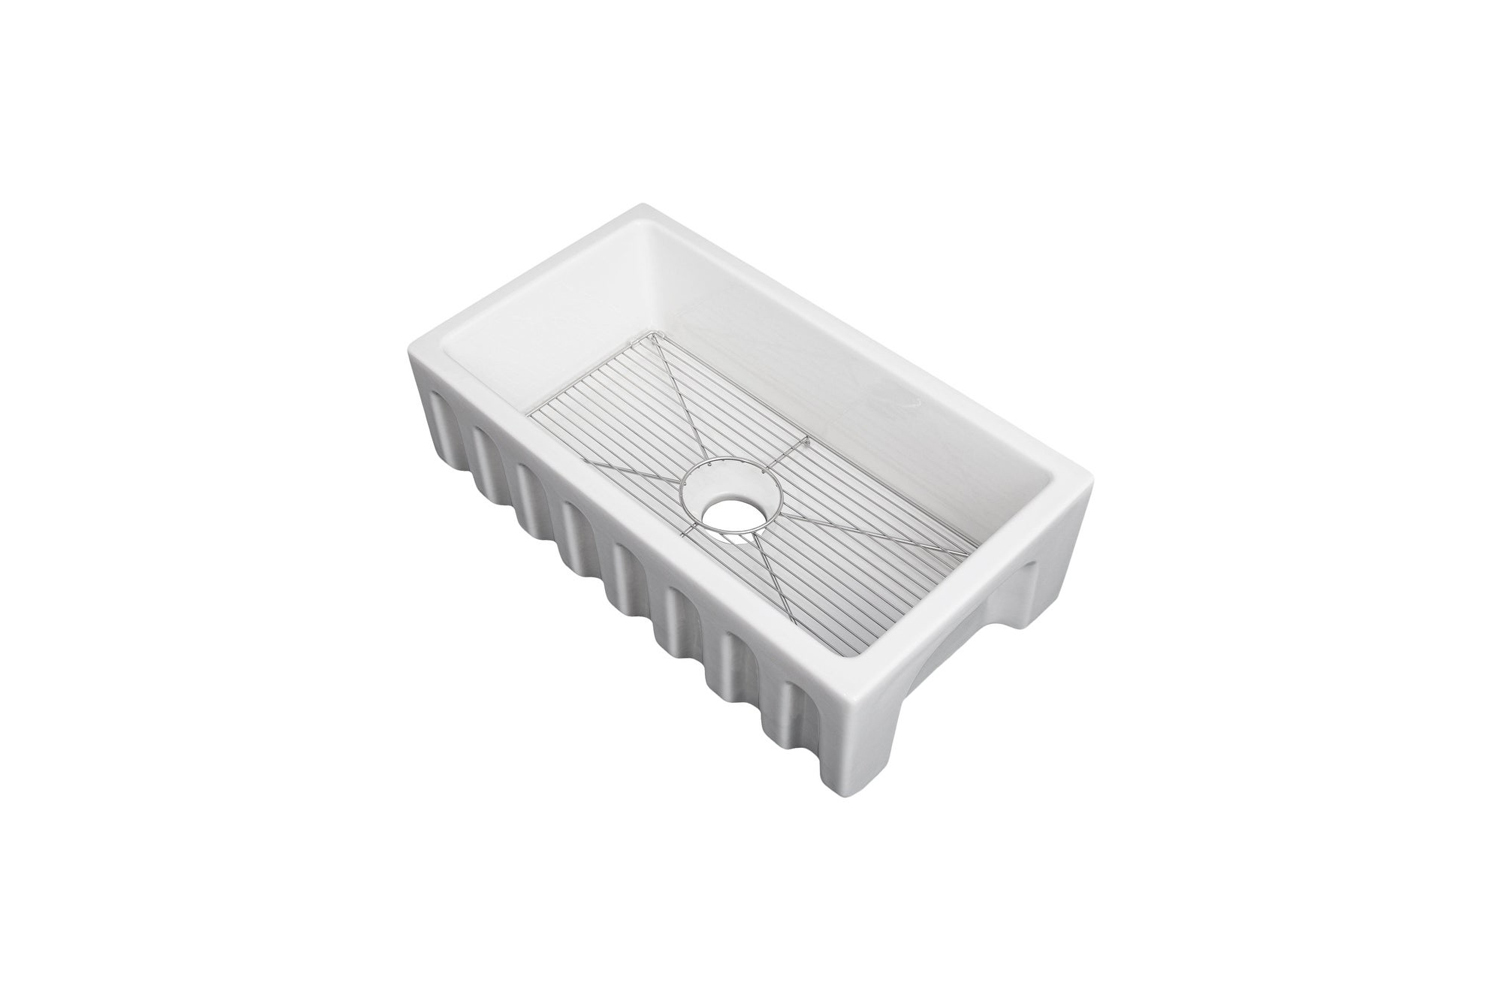 the zline farmhouse single bowl sink with bottom grid is similar to the vintage 17